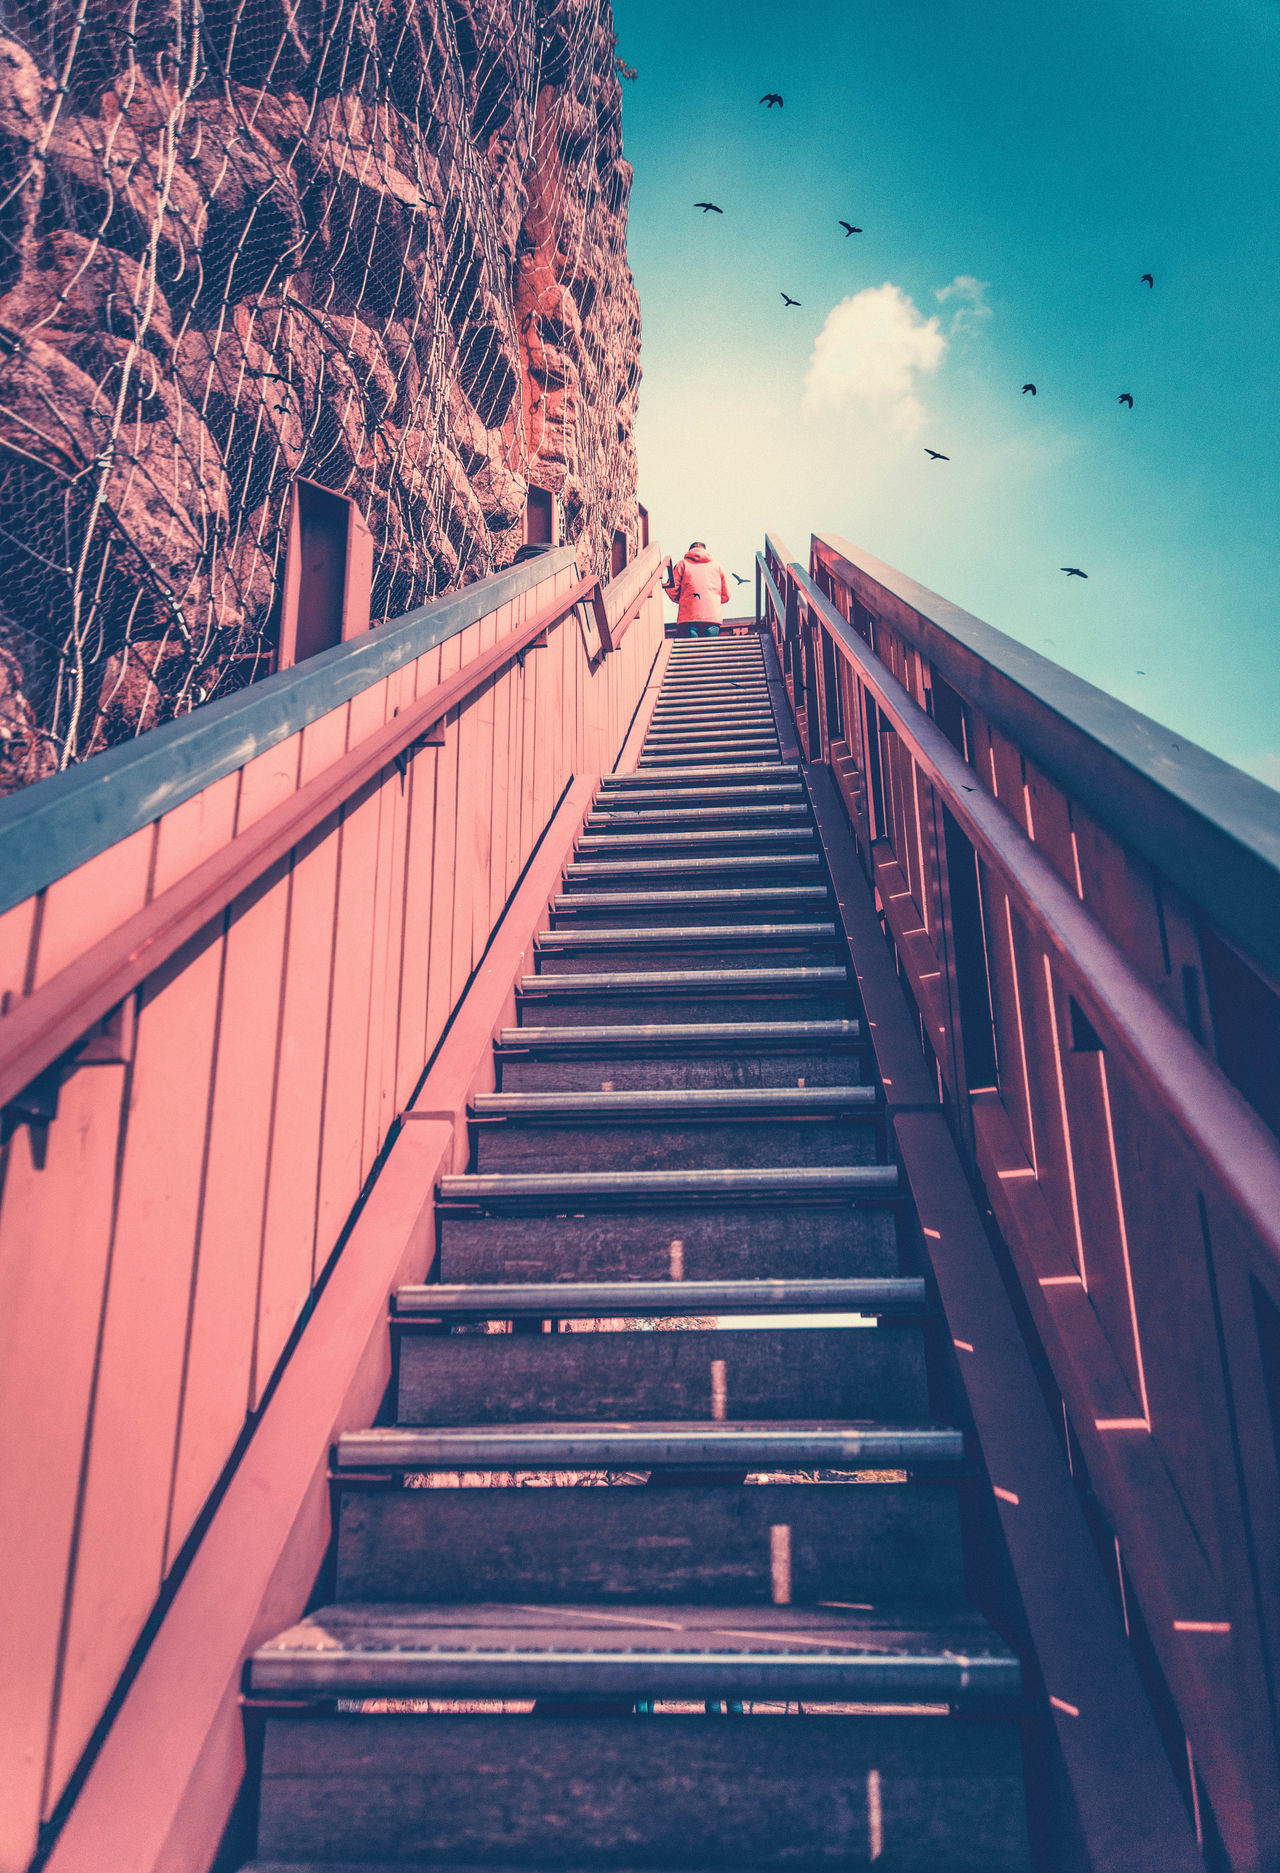 Stairs to heaven Architecture Birds In Flight Built Structure EyeEm Best Shots EyeEm Gallery EyeEmBestPics Geometric Abstraction Geometric Shape Outdoors Stairs Stairs_collection Steps Steps And Staircases The Way Forward Travel Travel Destinations Travel Photography Neighborhood Map